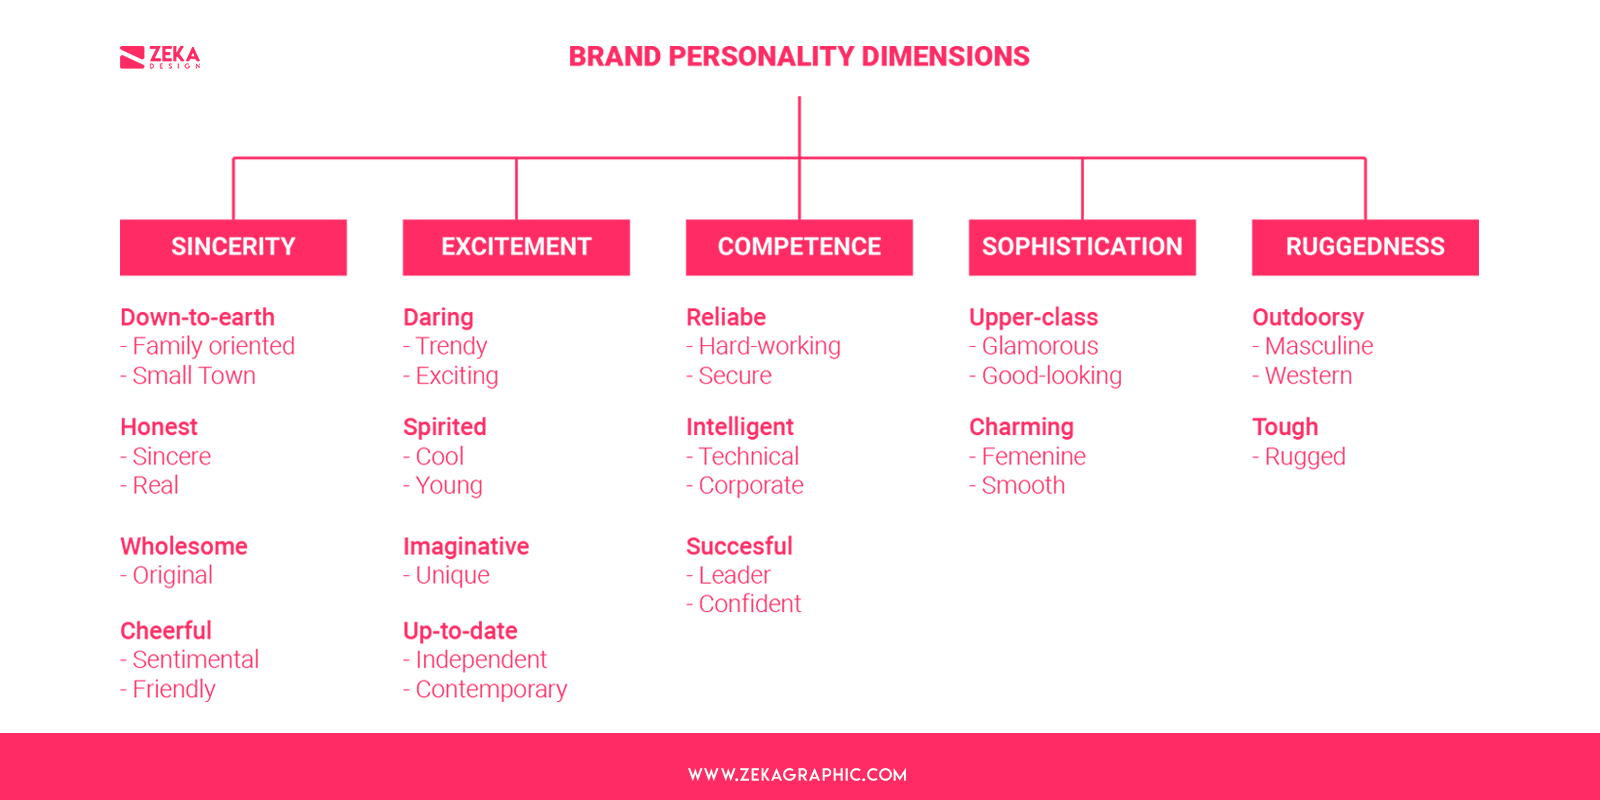 Aaker Brand Personality Dimensions And Brand Personality Traits